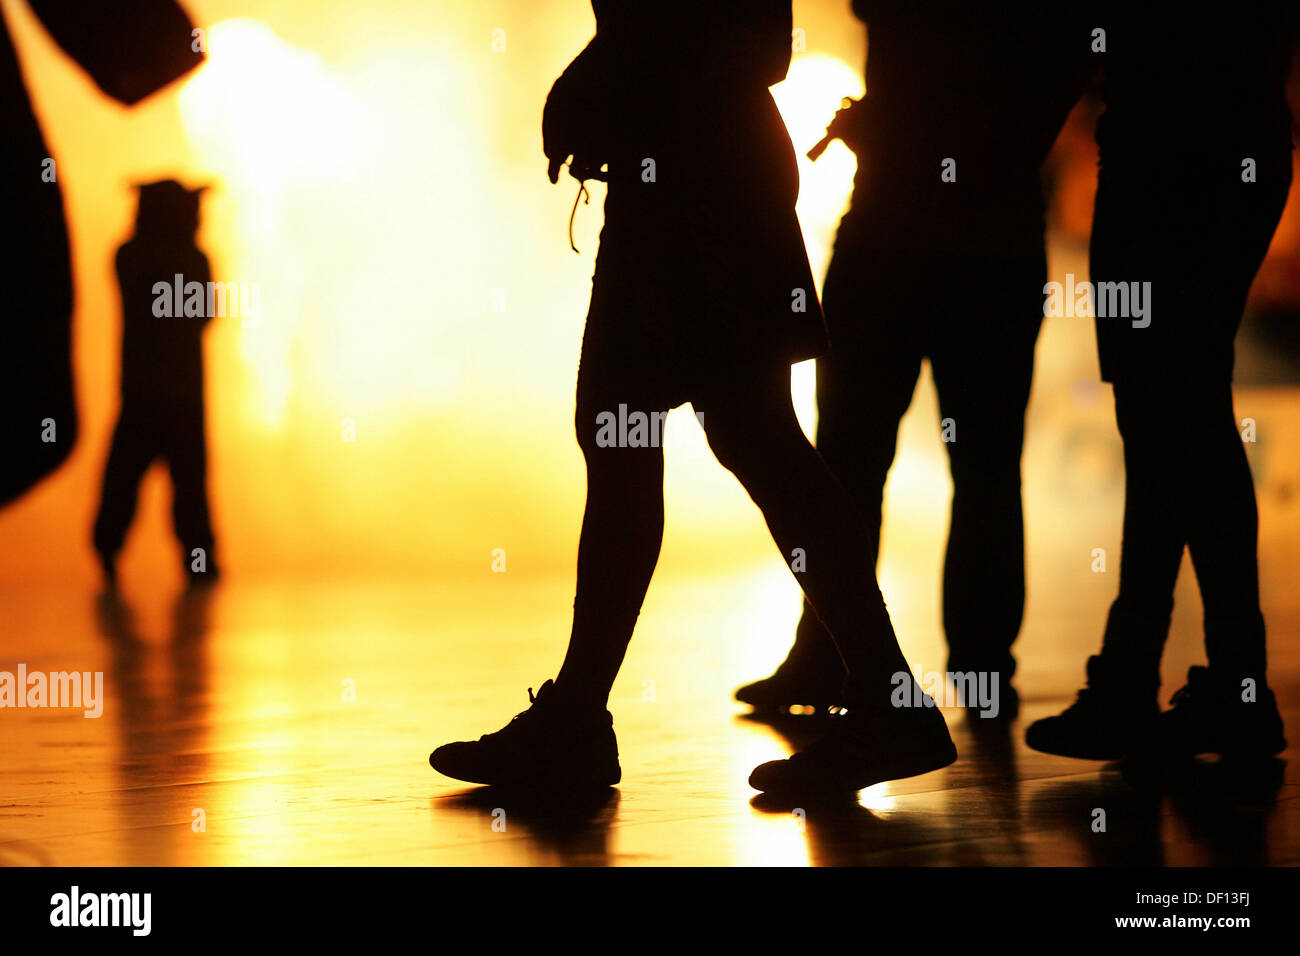 Berlin, Germany, silhouettes of legs Stock Photo